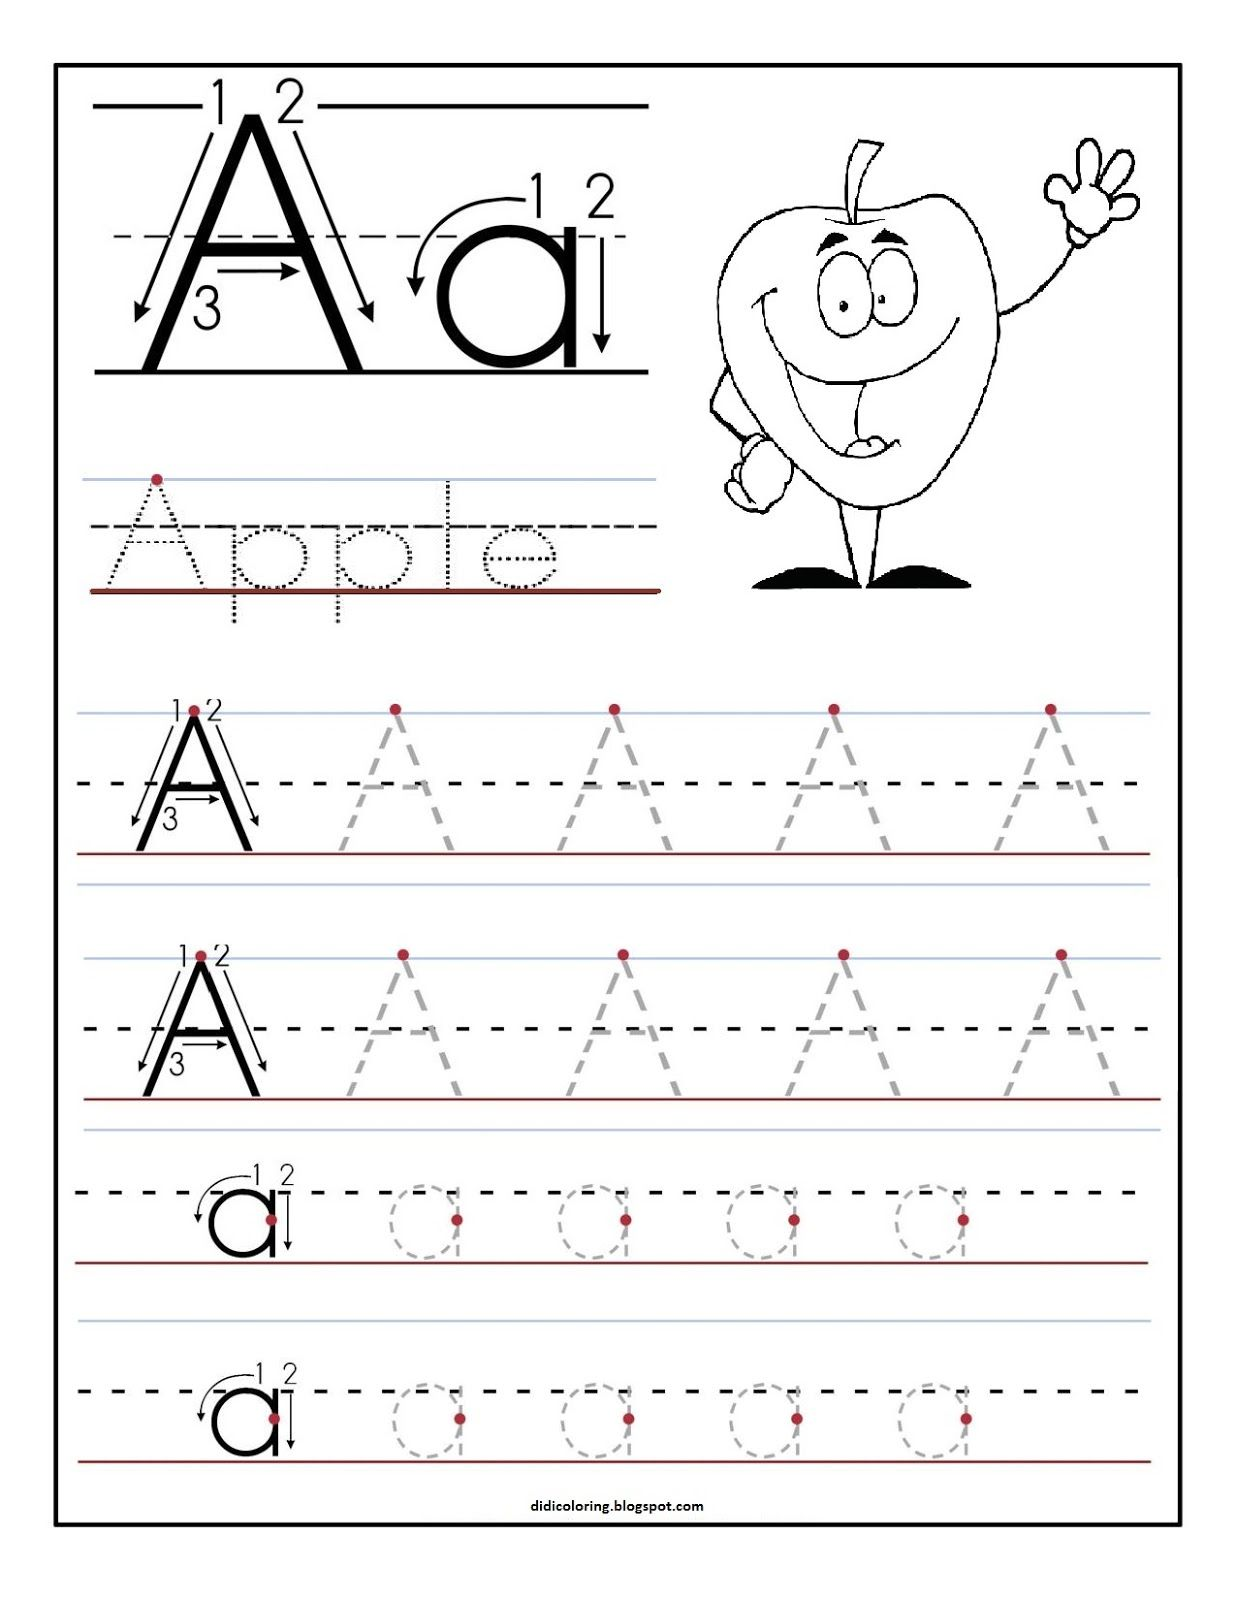 Free Printable Worksheet Letter A For Your Child To Learn And Write